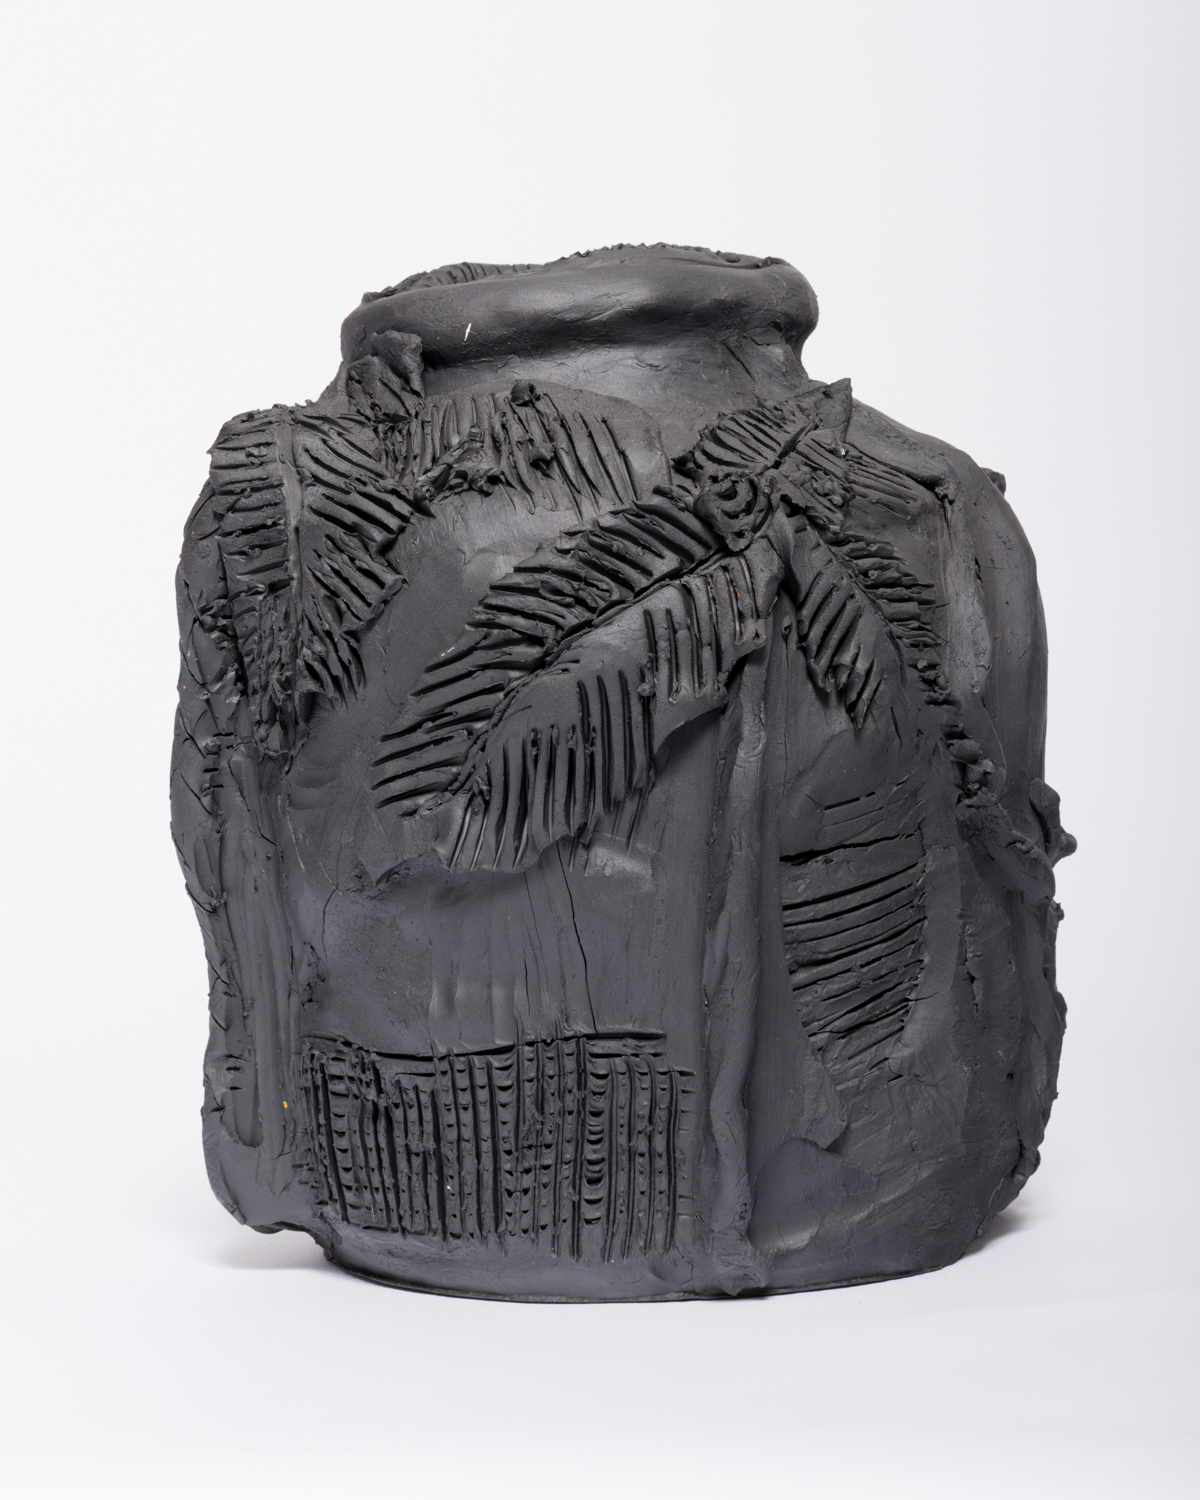 Alex Becerra Palms and Figures 2017 Cassius basaltic clay 11h x 8w x 8d in AB309